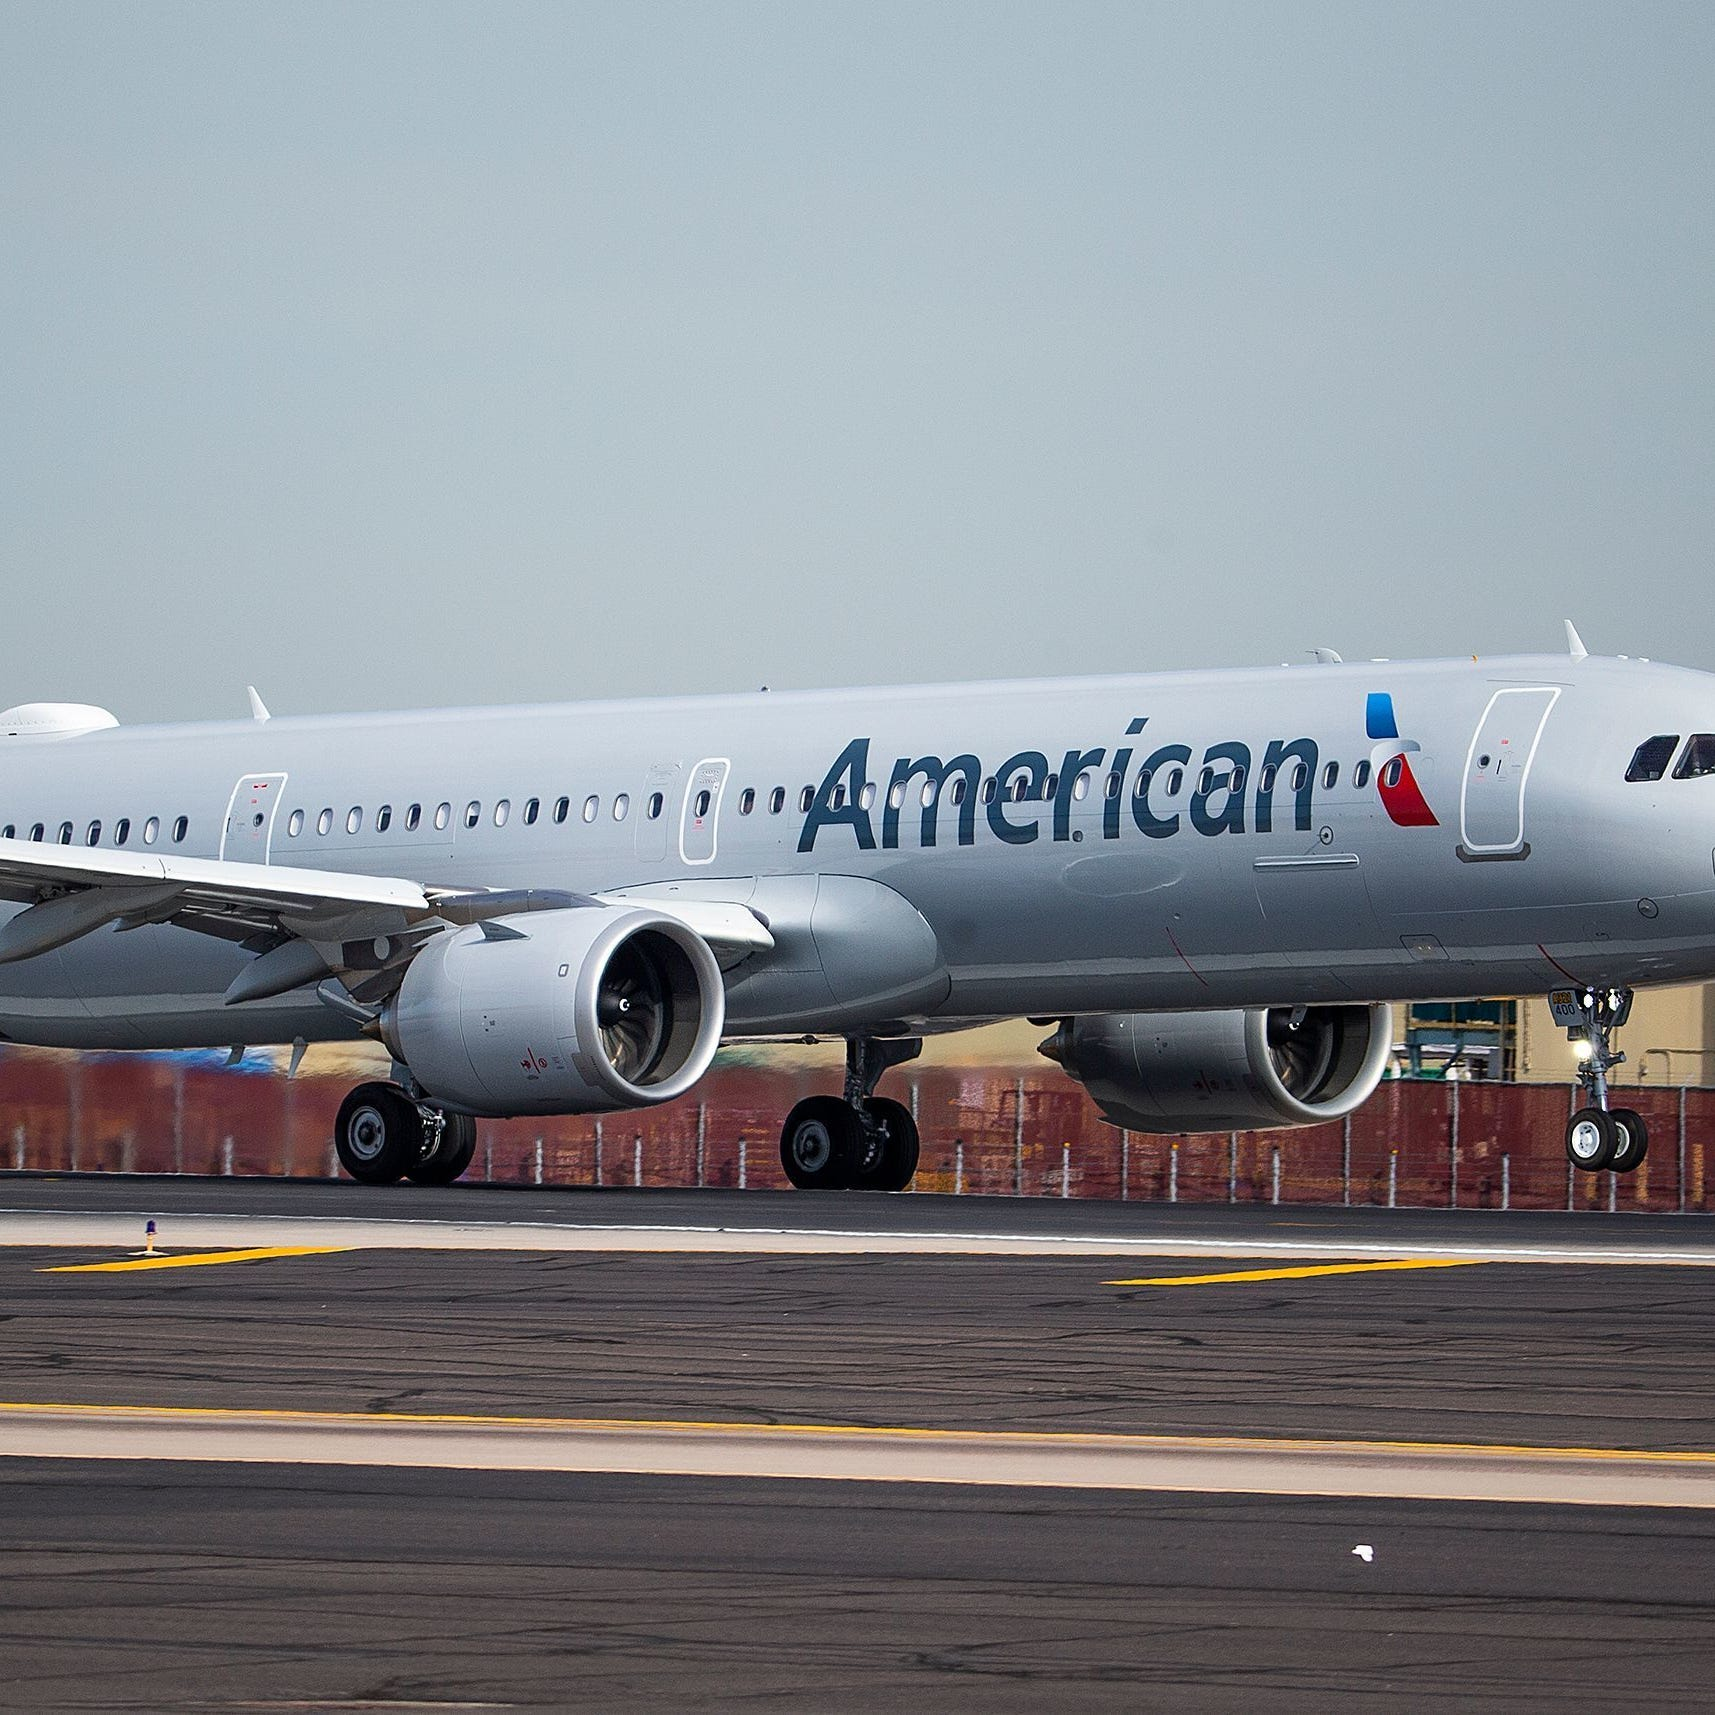 Direct flights from Orlando Melbourne International Airport to Washington, D.C., to debut on American Airlines